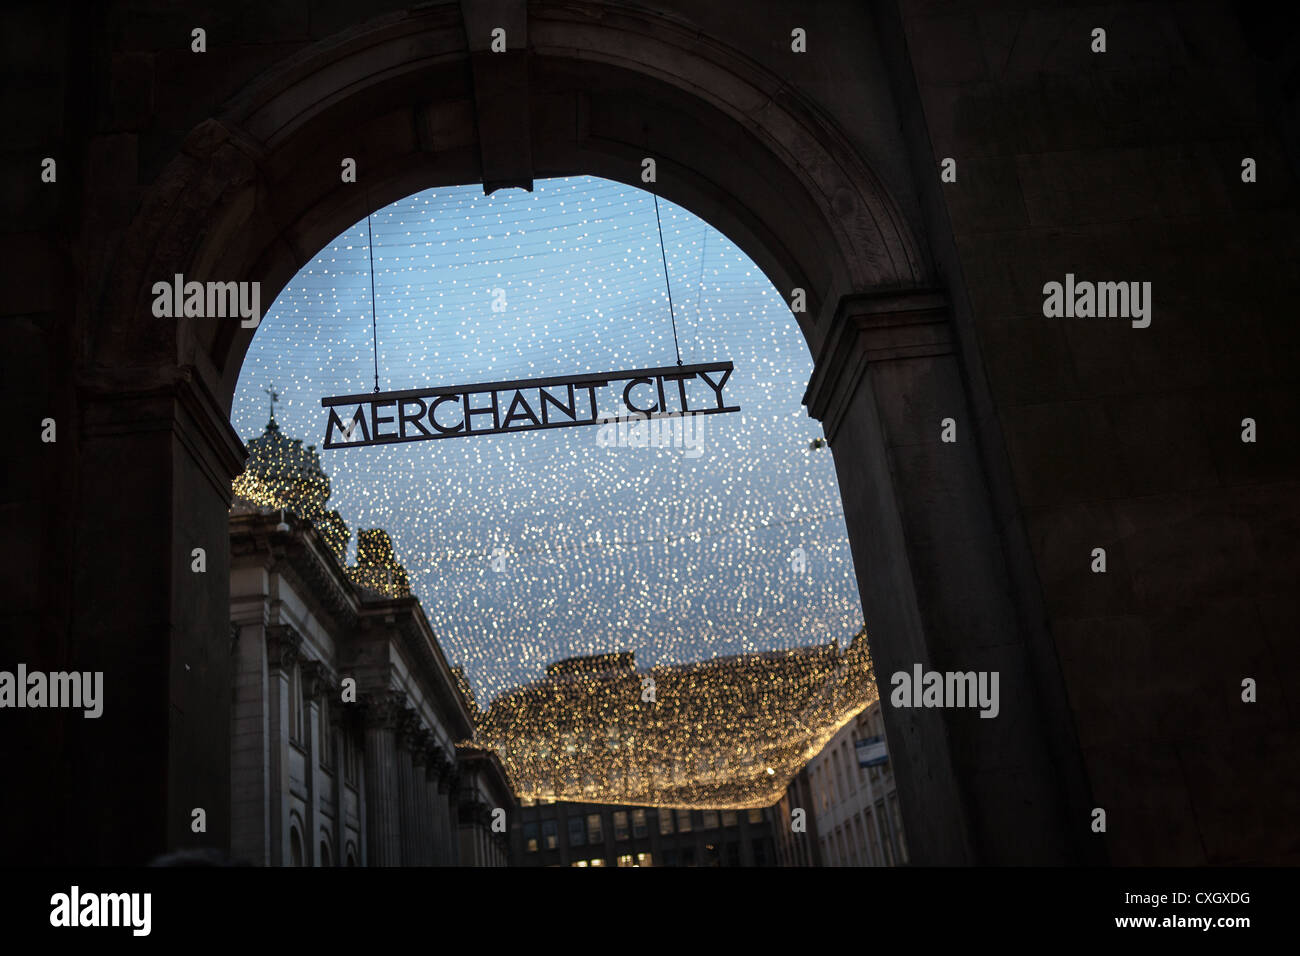 Arch with sign in Glasgow to Merchant City area. - Stock Image